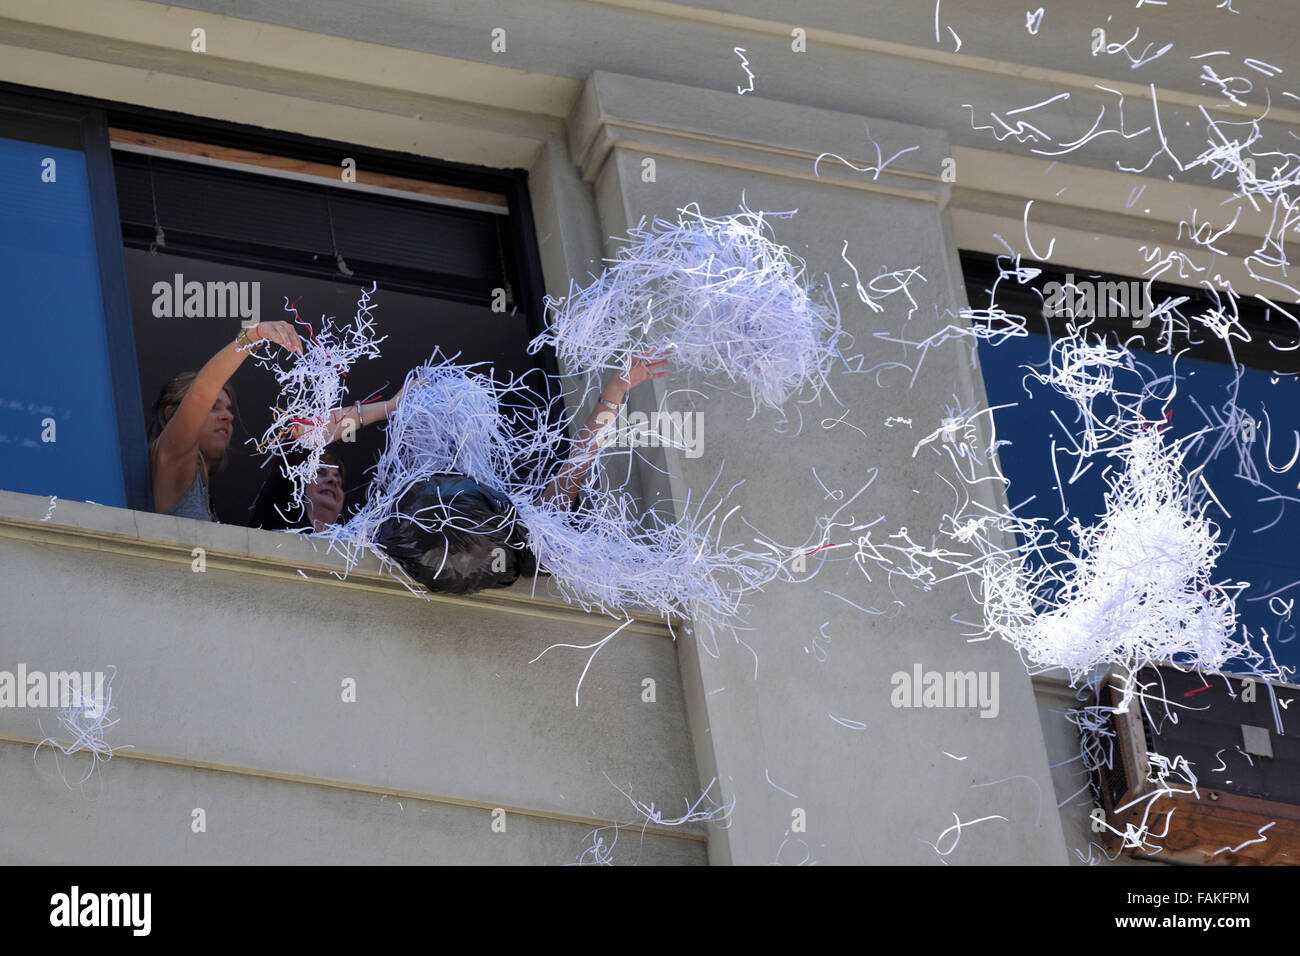 Montevideo, Uruguay. 31st Dec, 2015. Employees throw paper from a building, during the classical water fight and Stock Photo